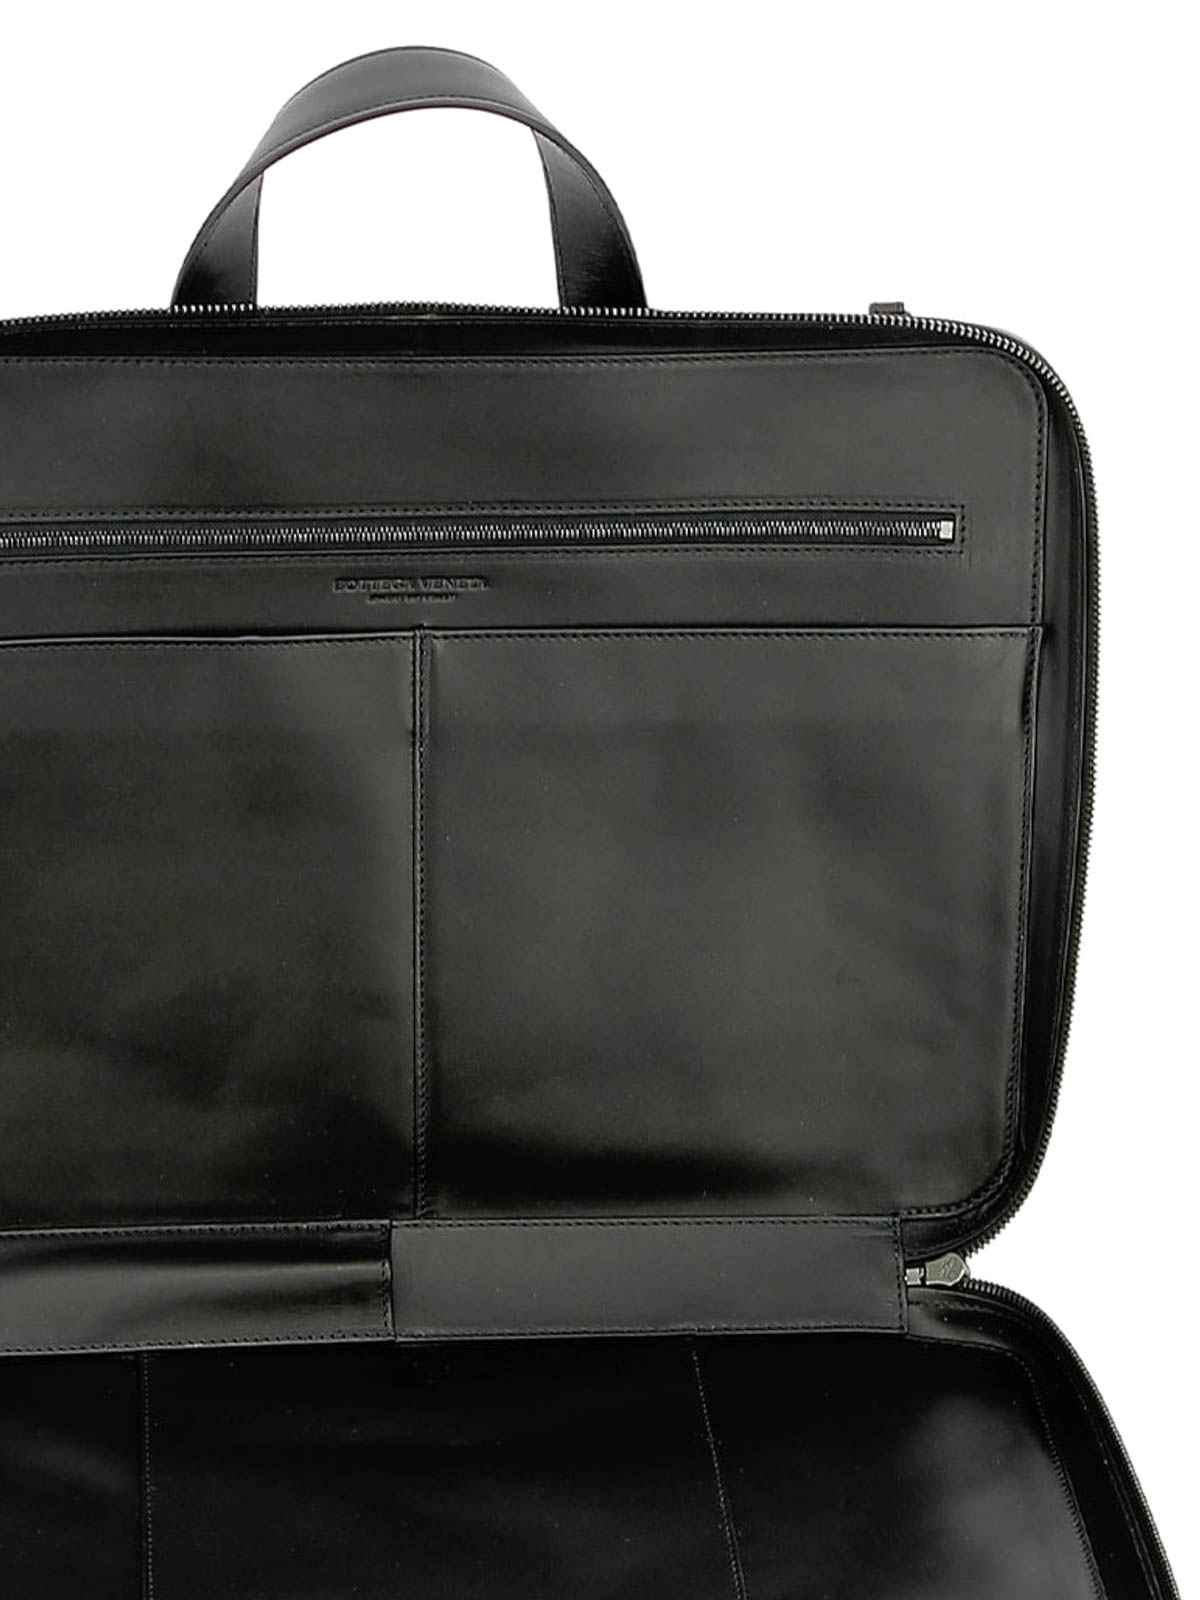 8bd8cd268f Bottega Veneta - Black Intrecciato VN Business bag - laptop bags ...